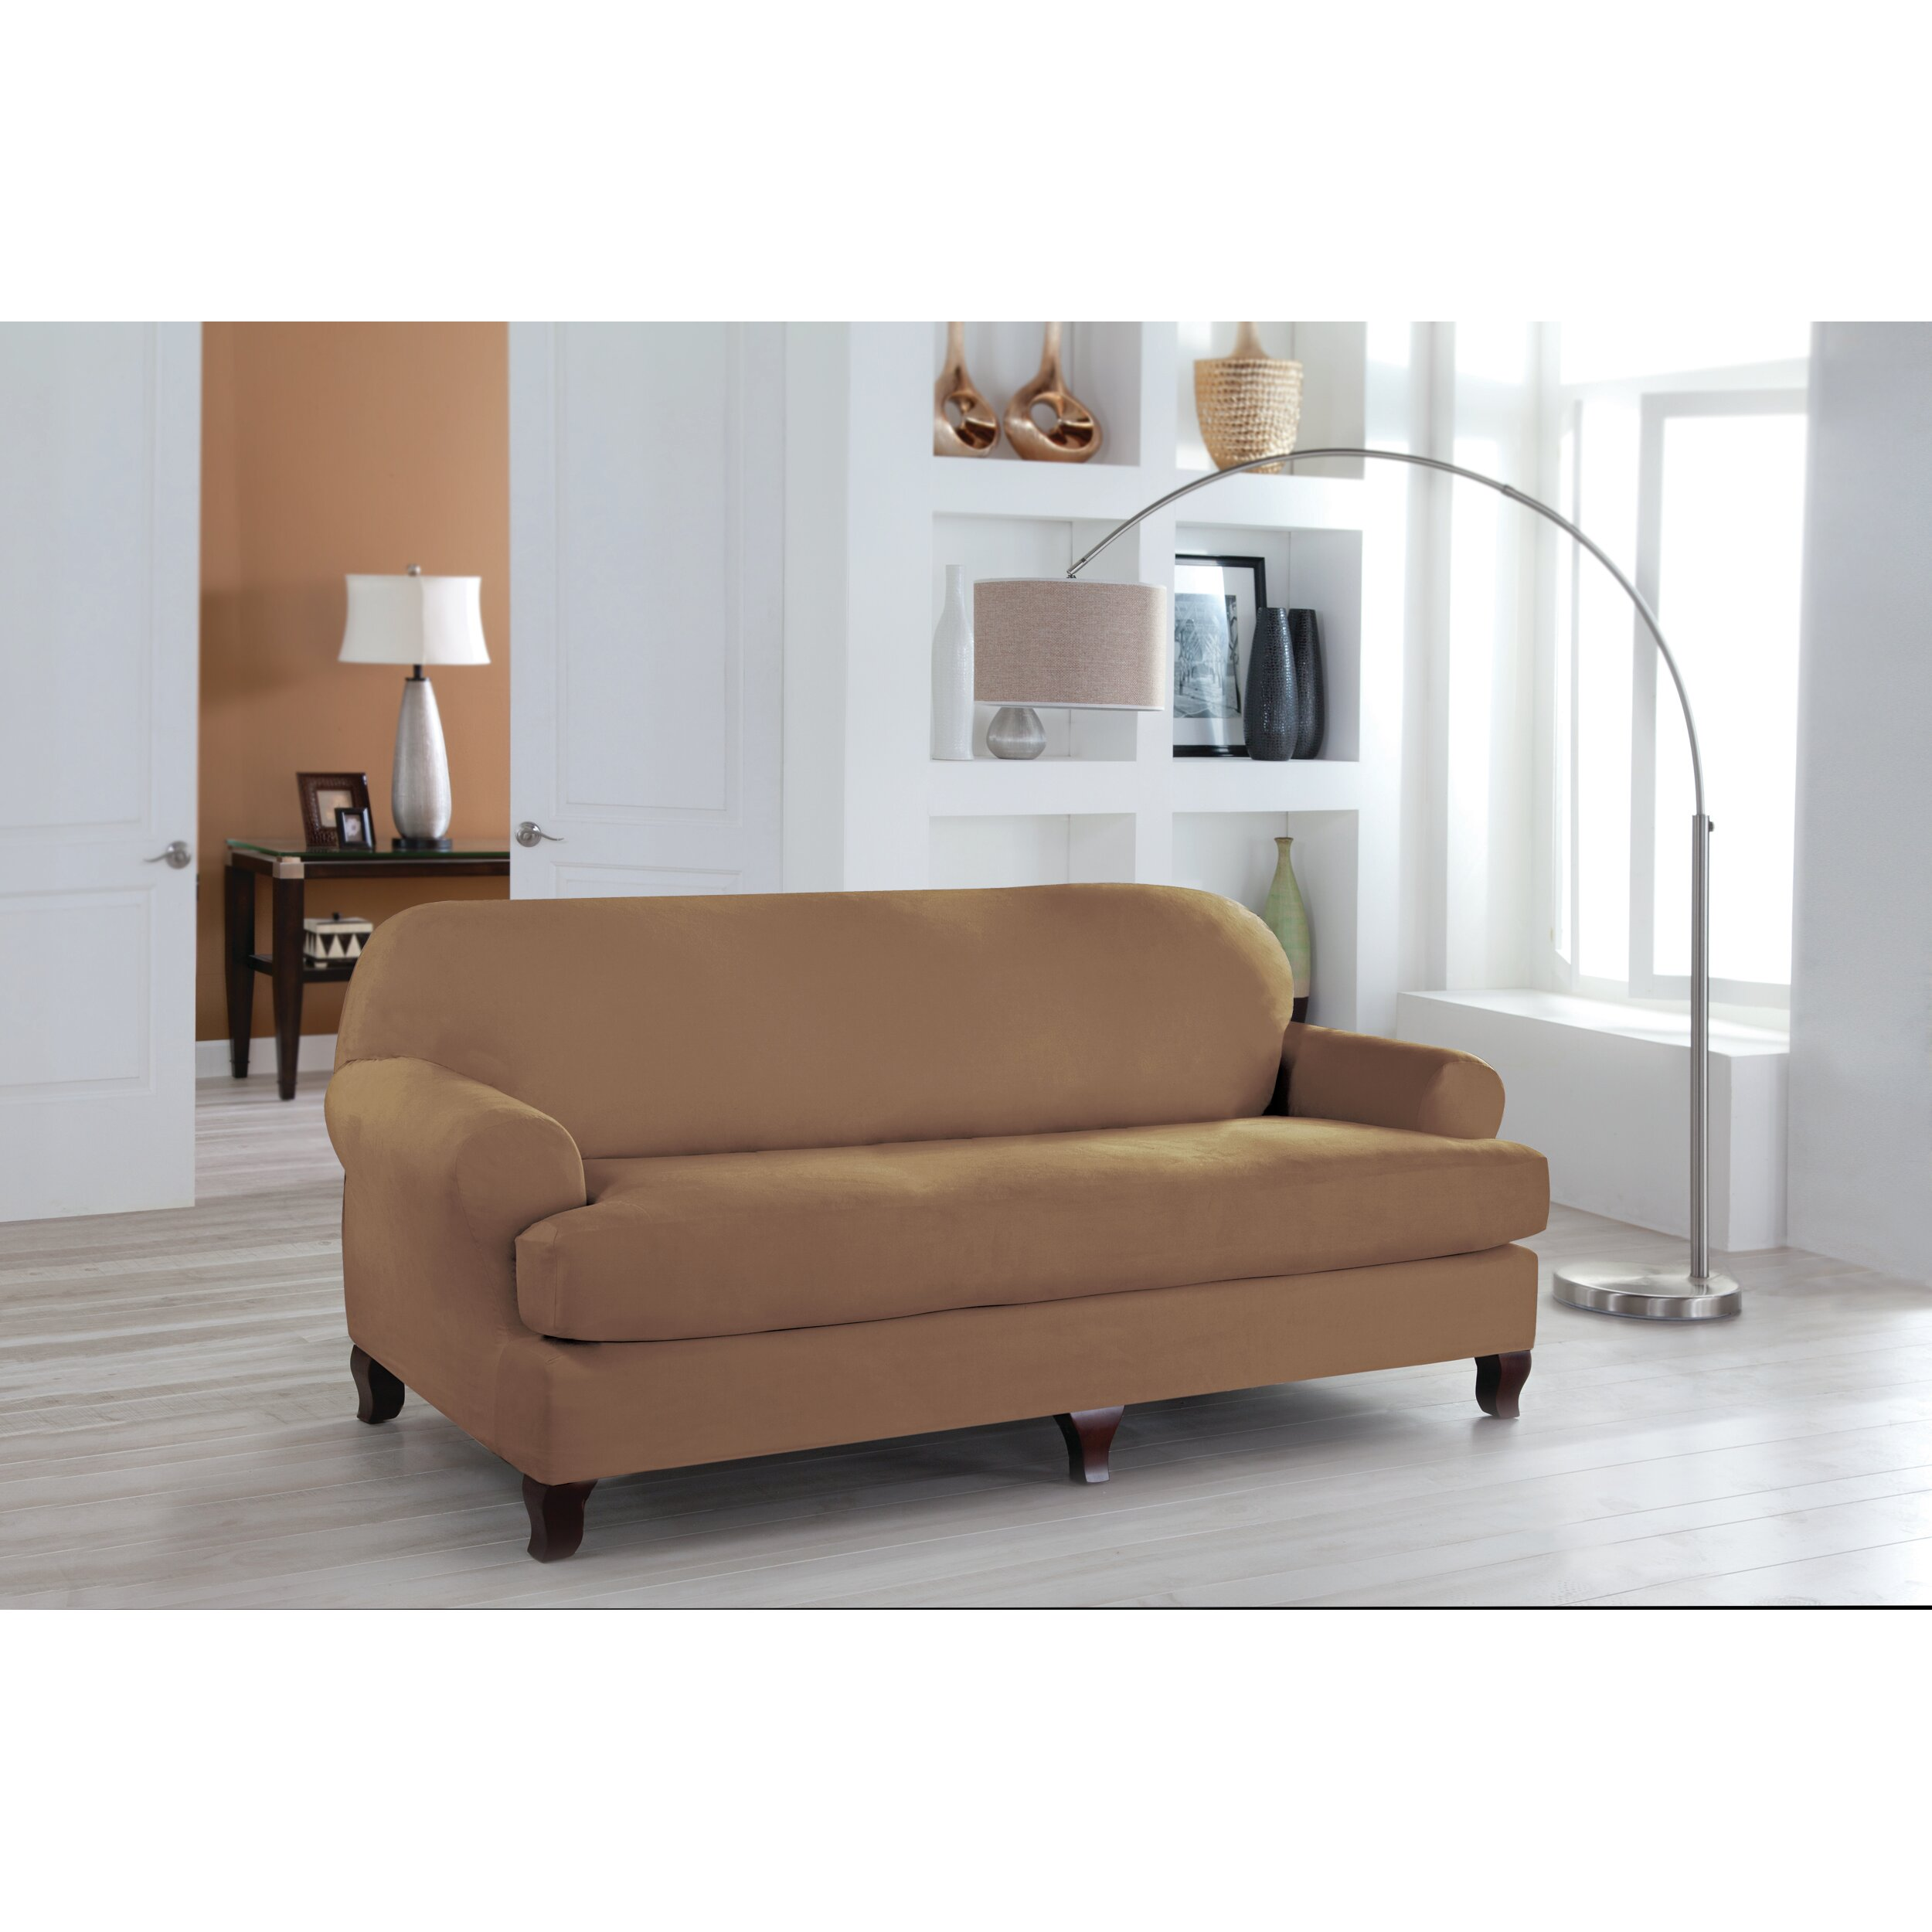 Sofa Slipcover: Perfect Fit Industries Tailor Fit Sofa T Cushion Slipcover